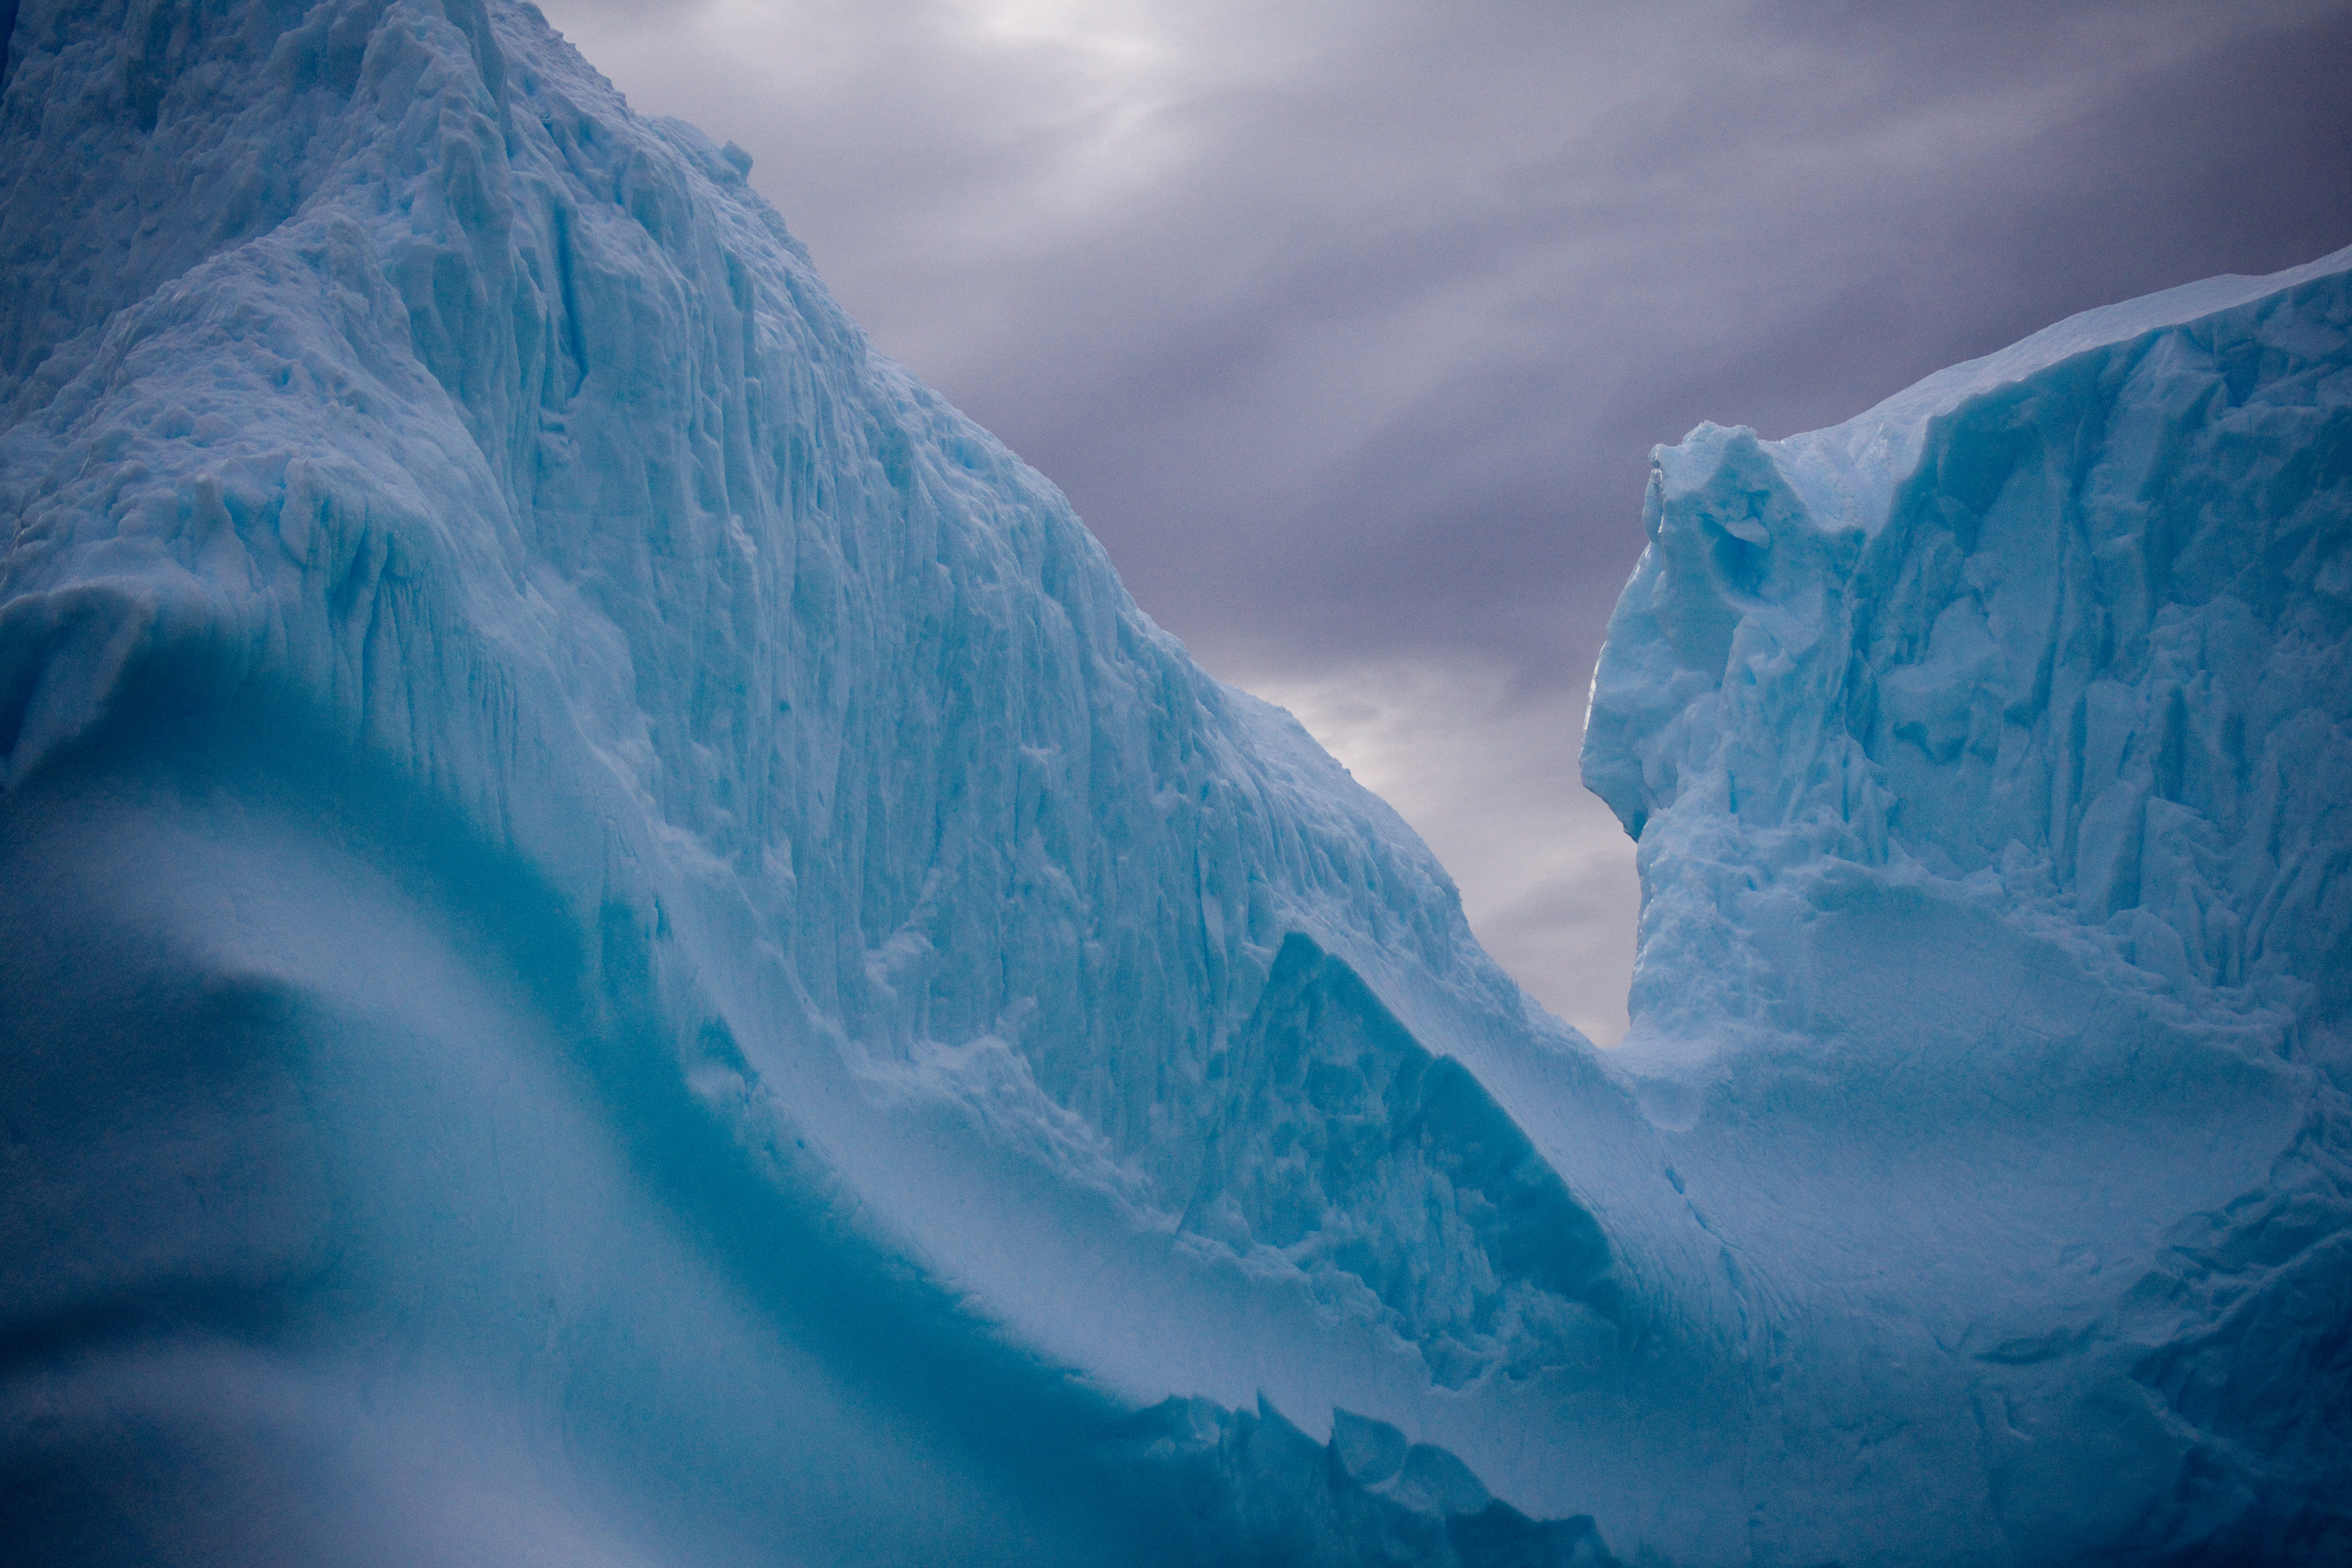 landscape photograph of ice formation